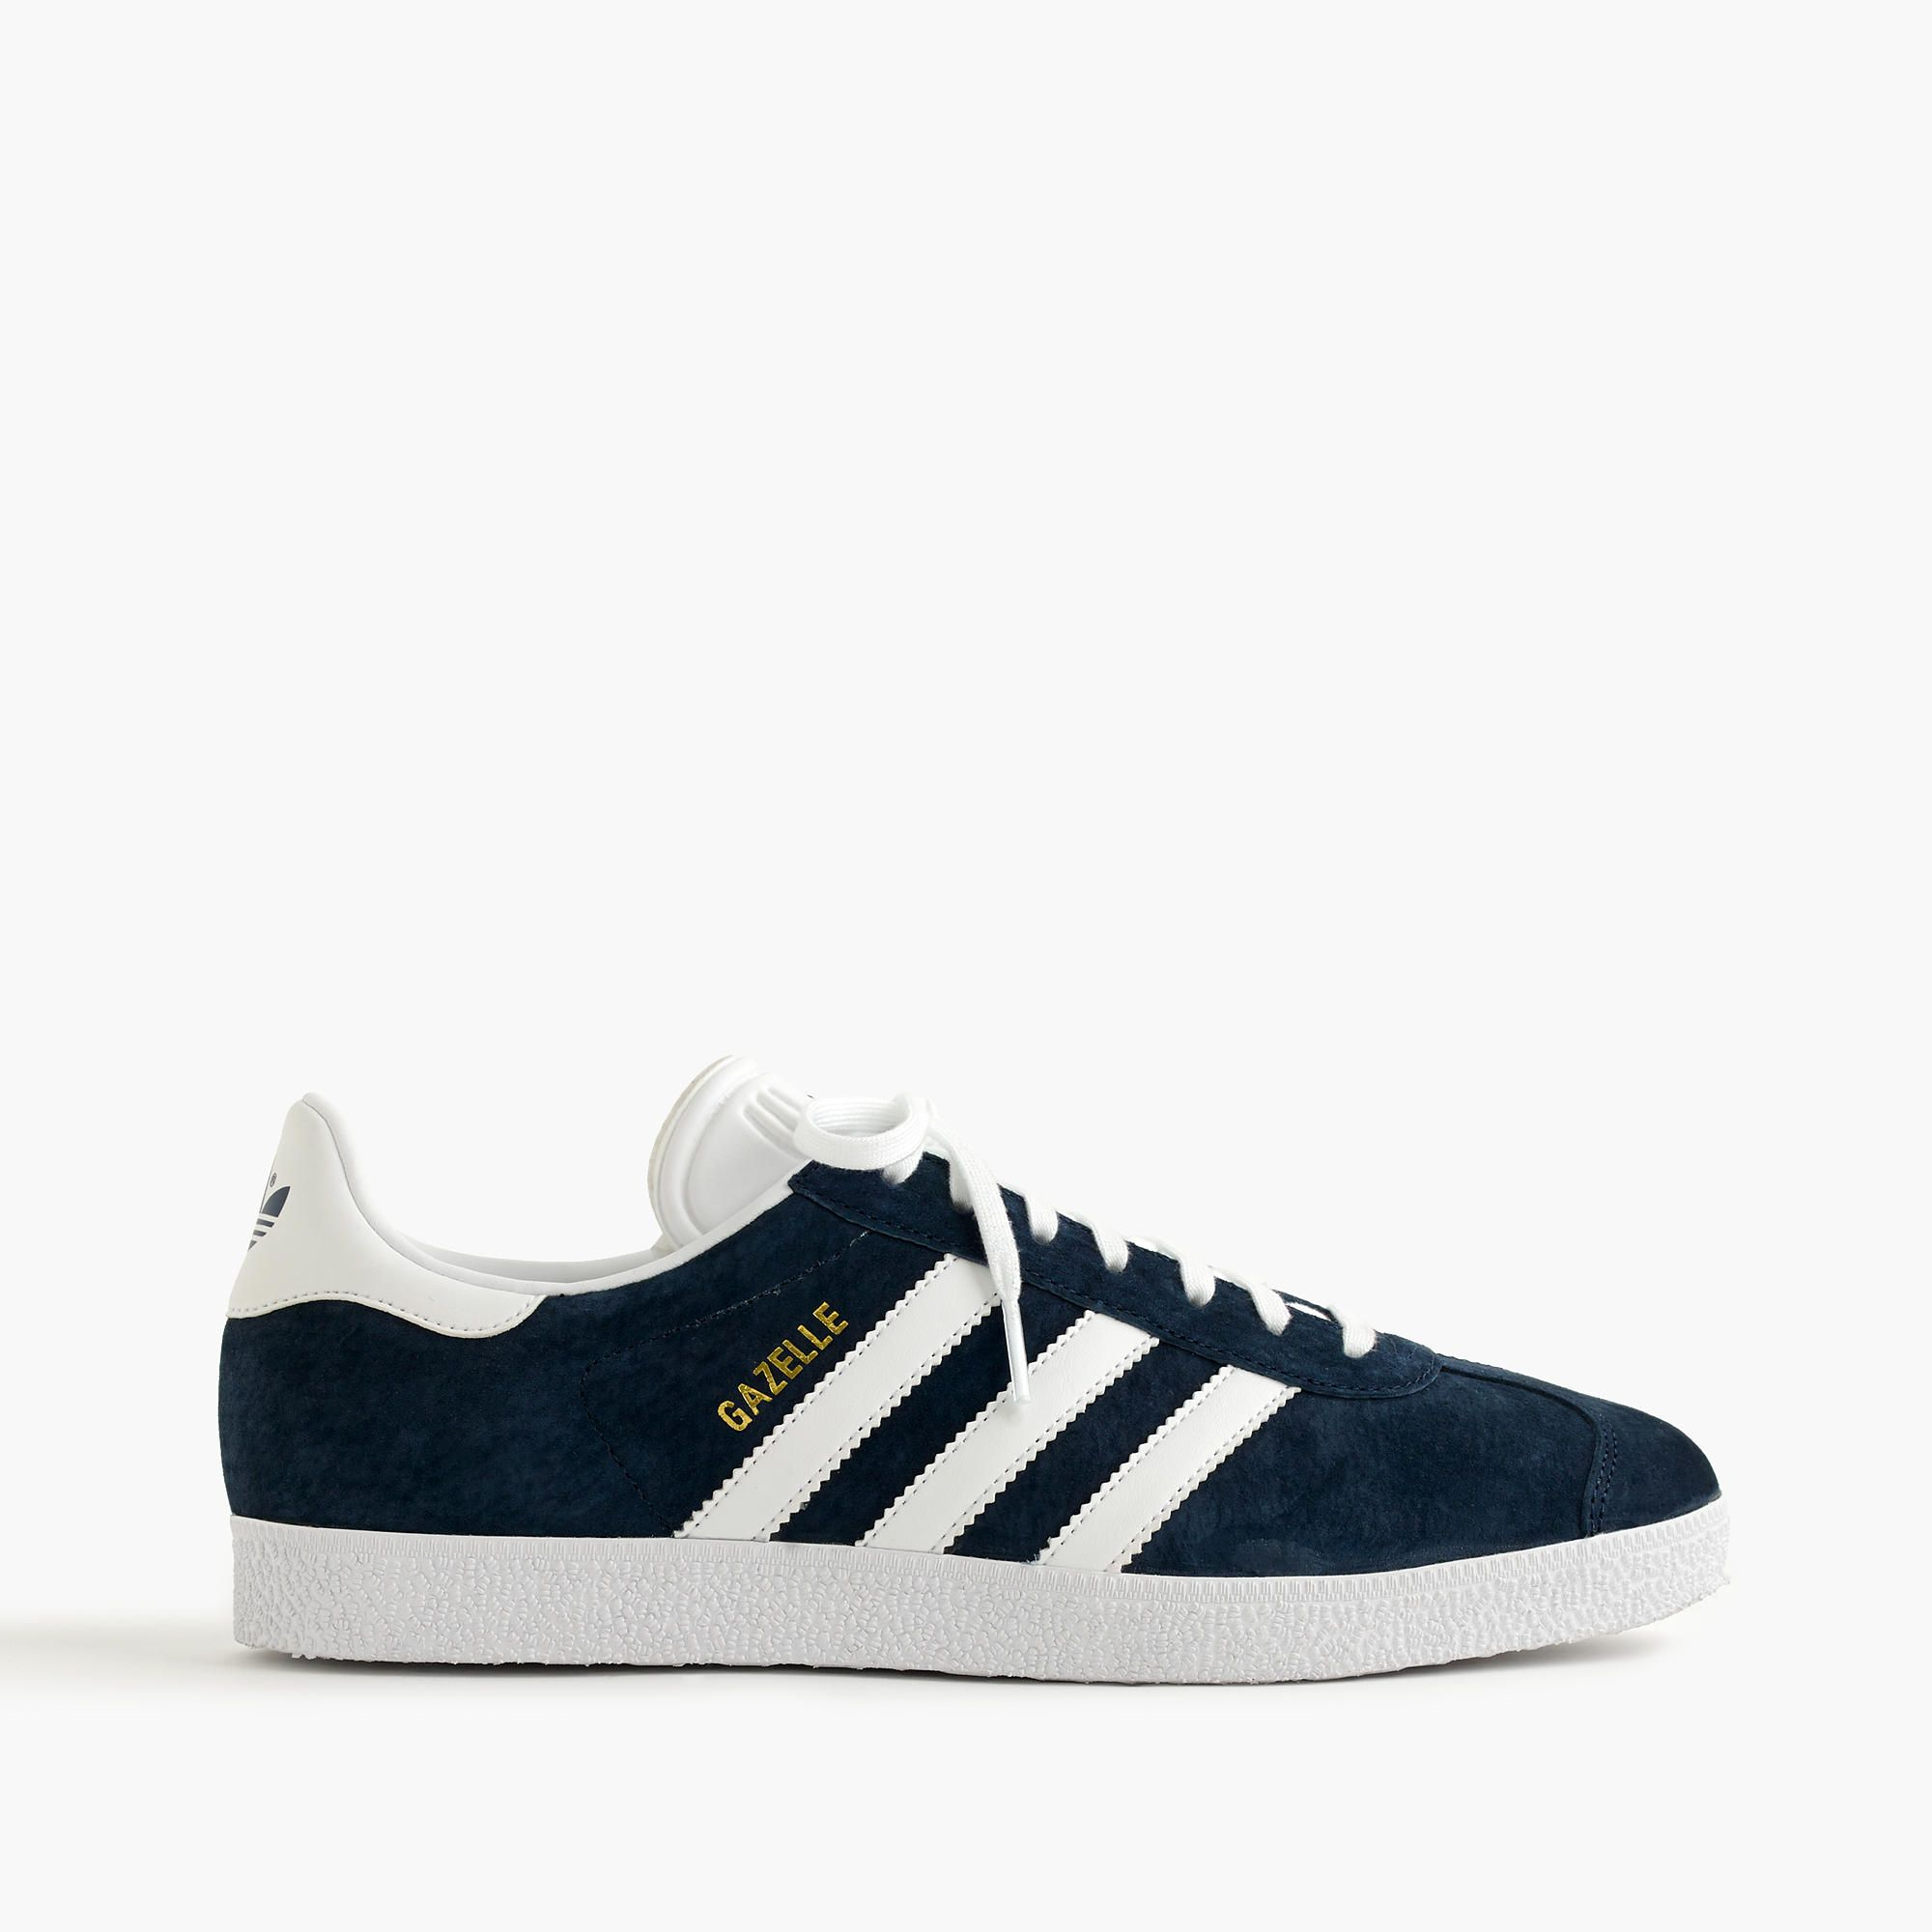 adidas Jeans Trainers in Navy /& White Leather subtle gum sole retro classic